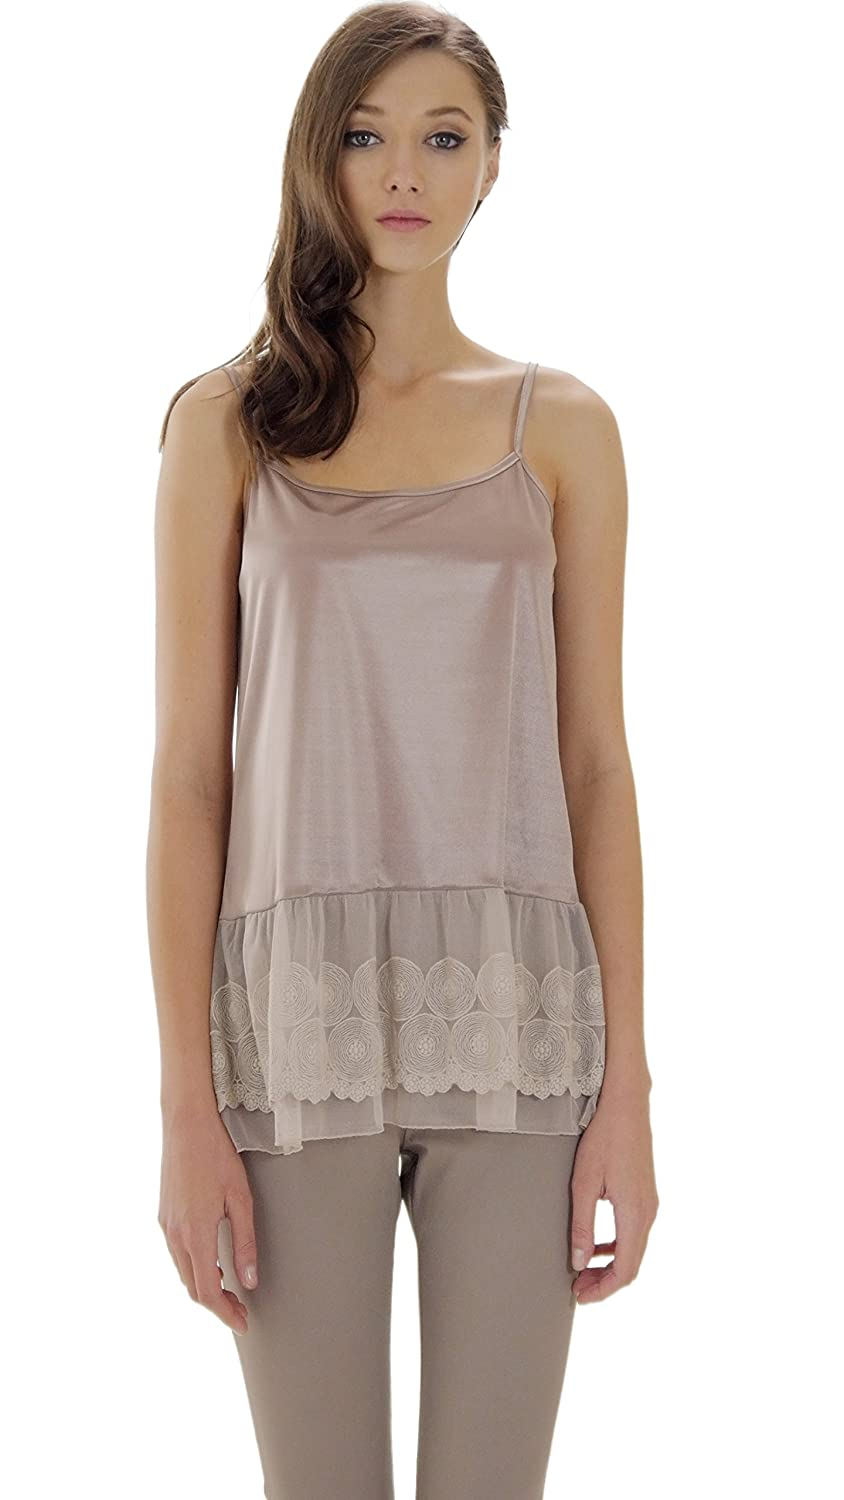 Melody Shop Lev Womens Satin Top Extender Camisole Slip with Circle Lace On The Bottom